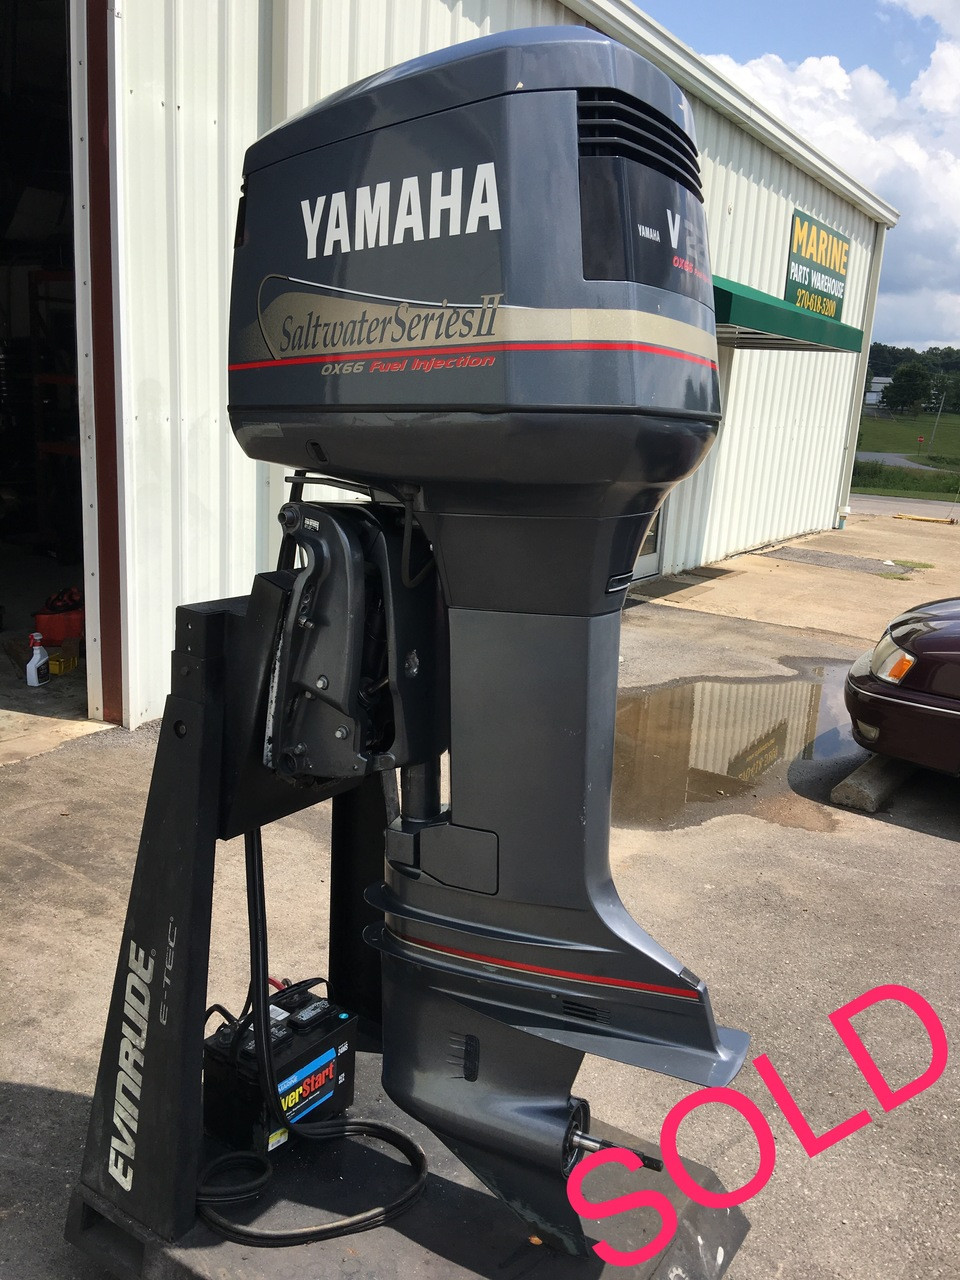 hight resolution of 2001 yamaha v225 saltwater series ii ox66 fuel injection 3 1l v6 2 yamaha ox66 outboard wiring diagram